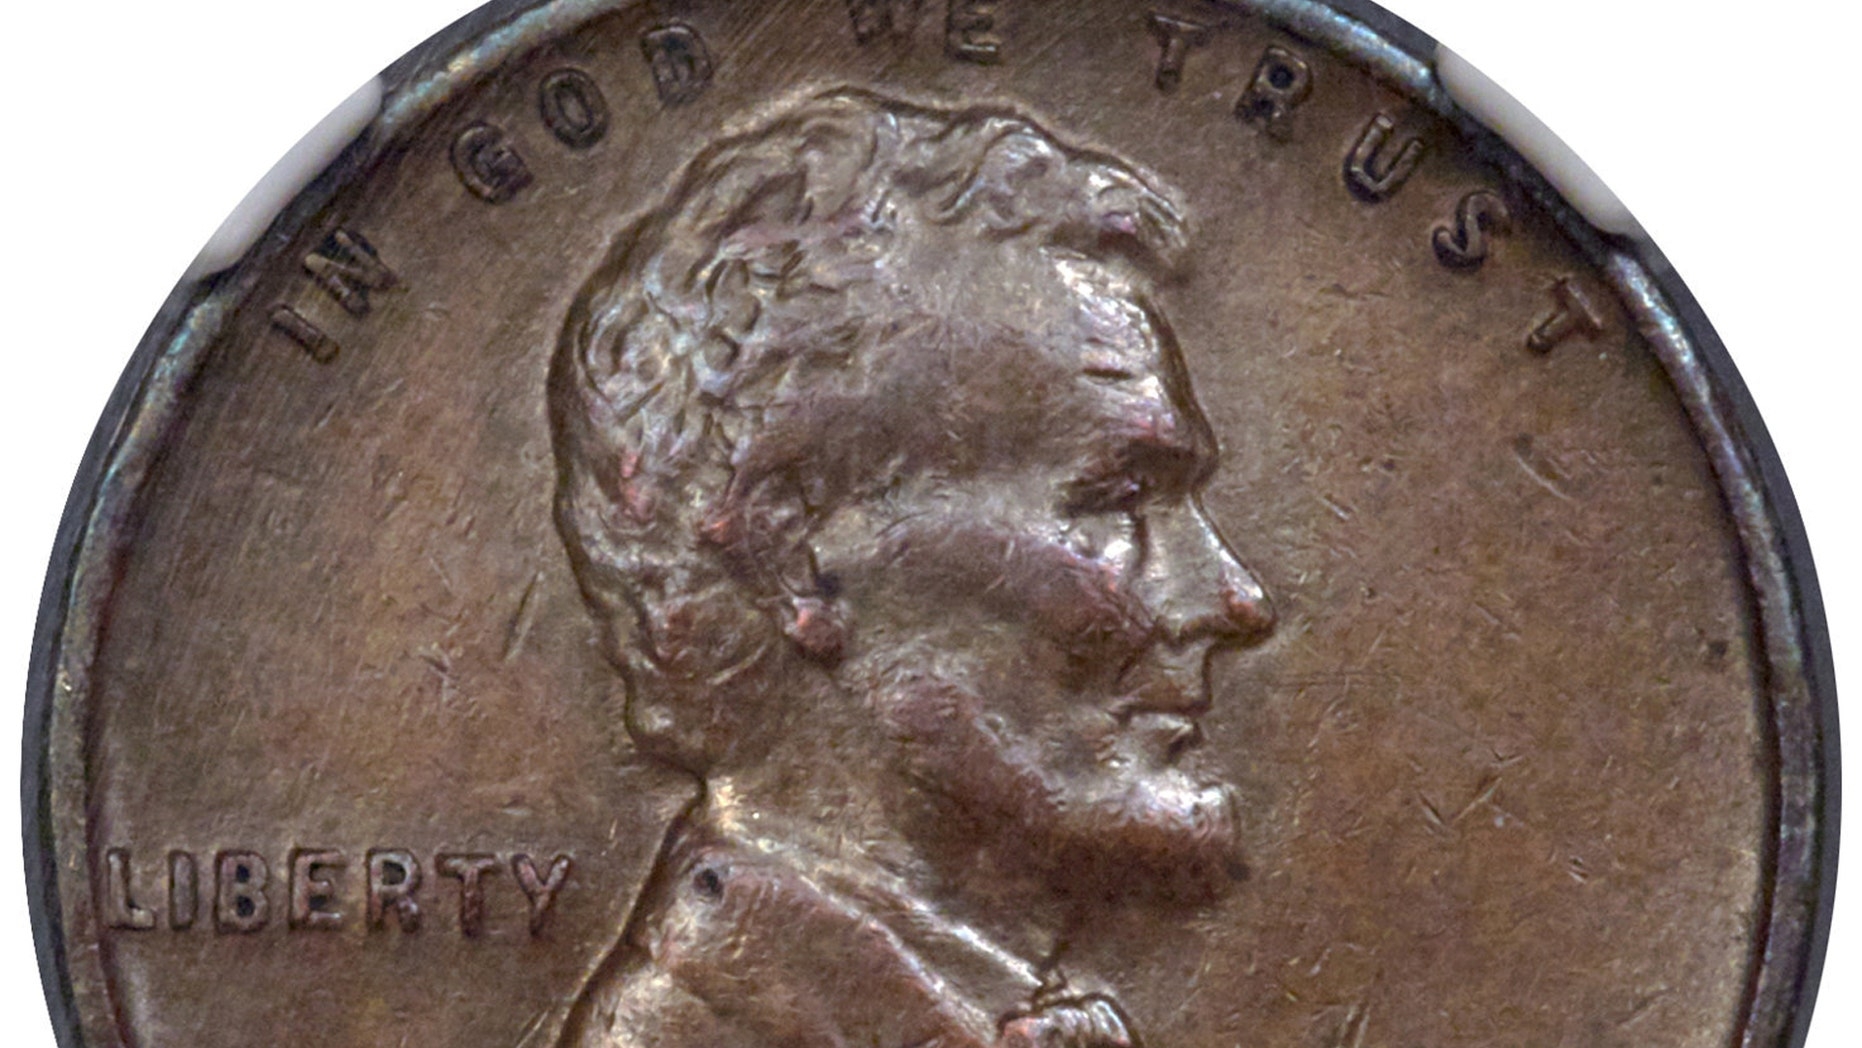 """When copper was needed for bullets and wire to win World War II, one of the most valuable coins in American history was created at the US Mint in an accident in 1<div class=""""e3lan e3lan-in-post1""""><script async src=""""//pagead2.googlesyndication.com/pagead/js/adsbygoogle.js""""></script> <!-- Text_Display_Responsive --> <ins class=""""adsbygoogle""""      style=""""display:block""""      data-ad-client=""""ca-pub-6192903739091894""""      data-ad-slot=""""3136787391""""      data-ad-format=""""auto""""      data-full-width-responsive=""""true""""></ins> <script> (adsbygoogle = window.adsbygoogle 